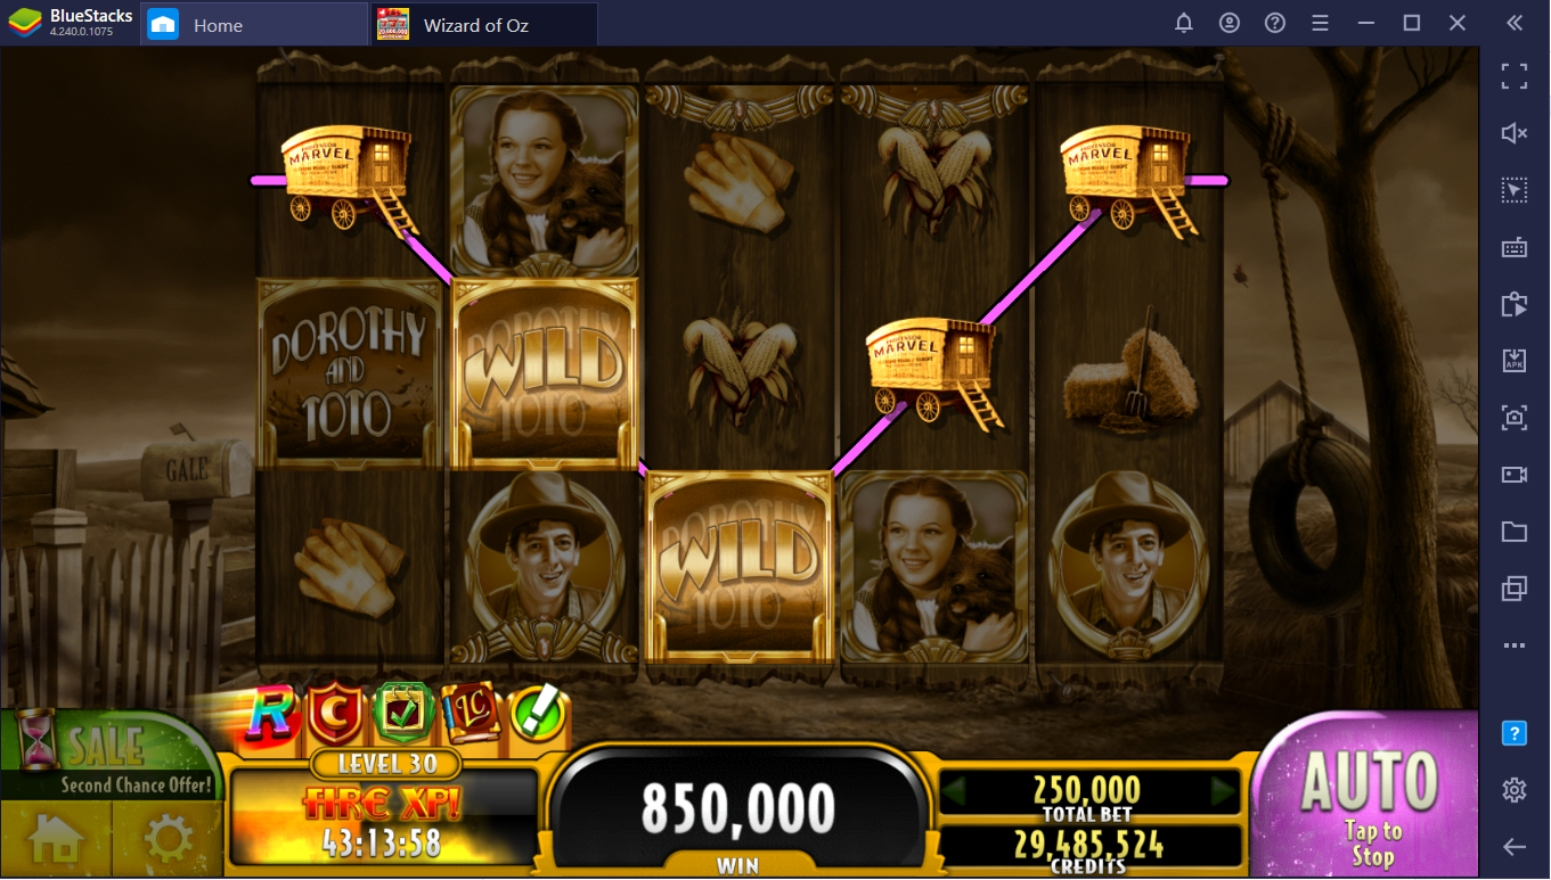 Beginner's Guide to Playing Wizard of Oz Casino on PC